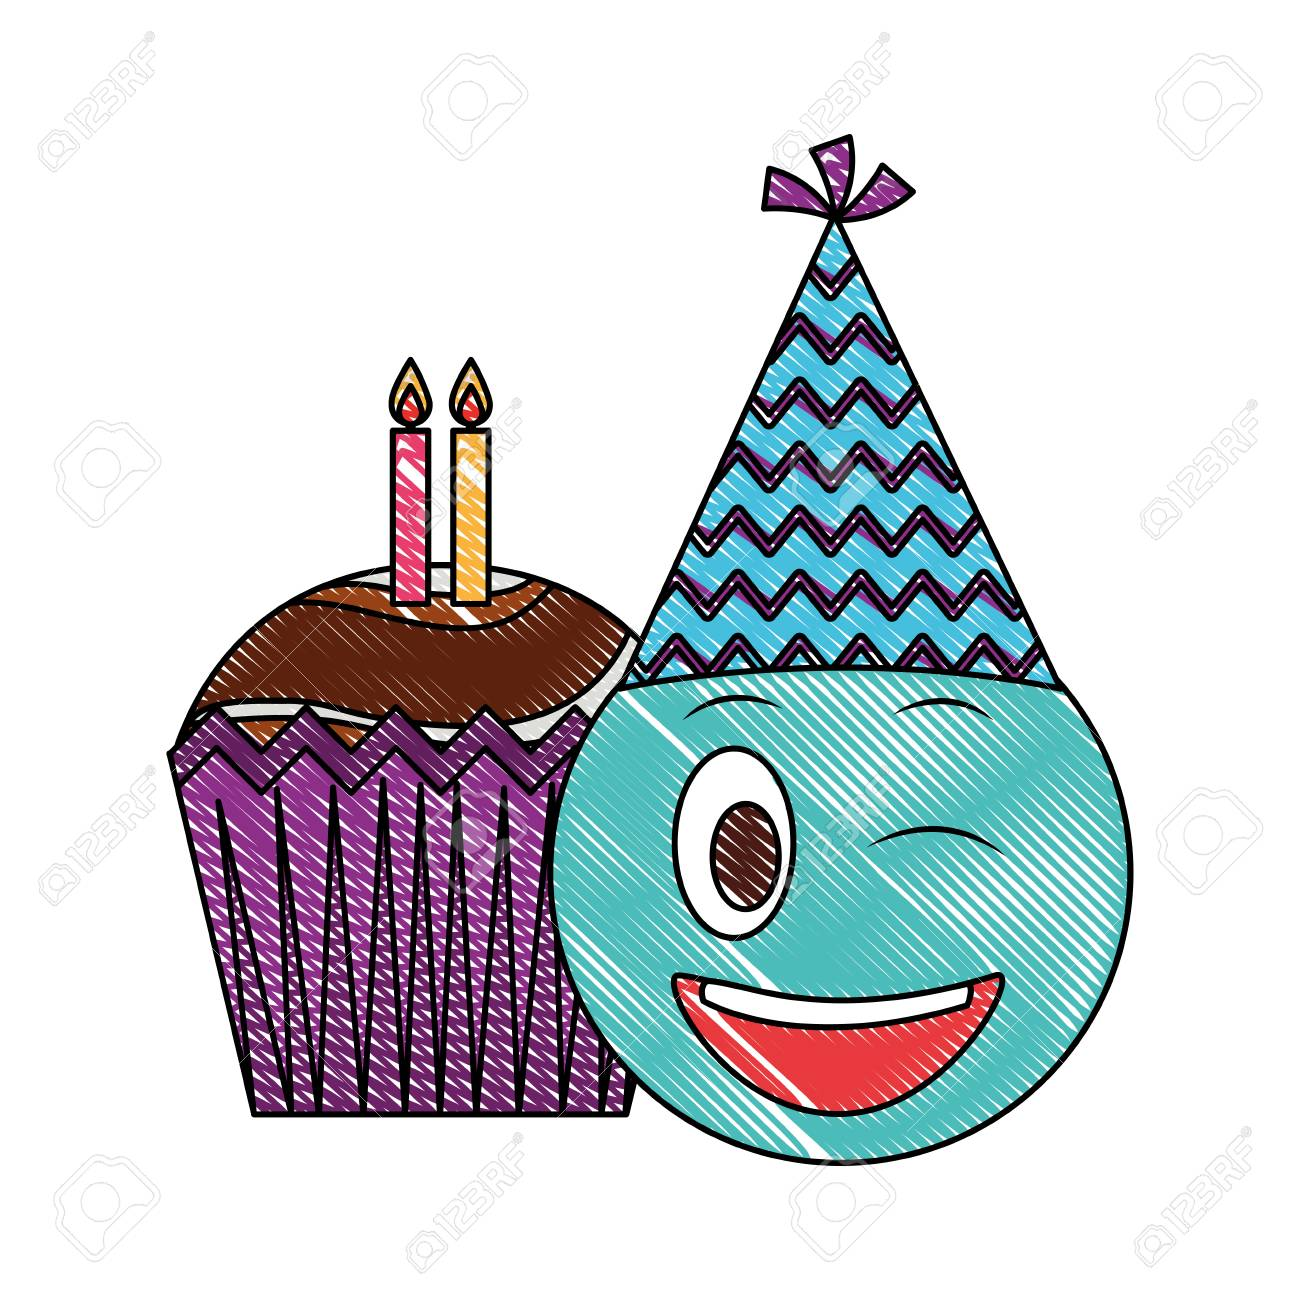 Birthday Emoji With Party Hat And Cupcakes Candles Vector